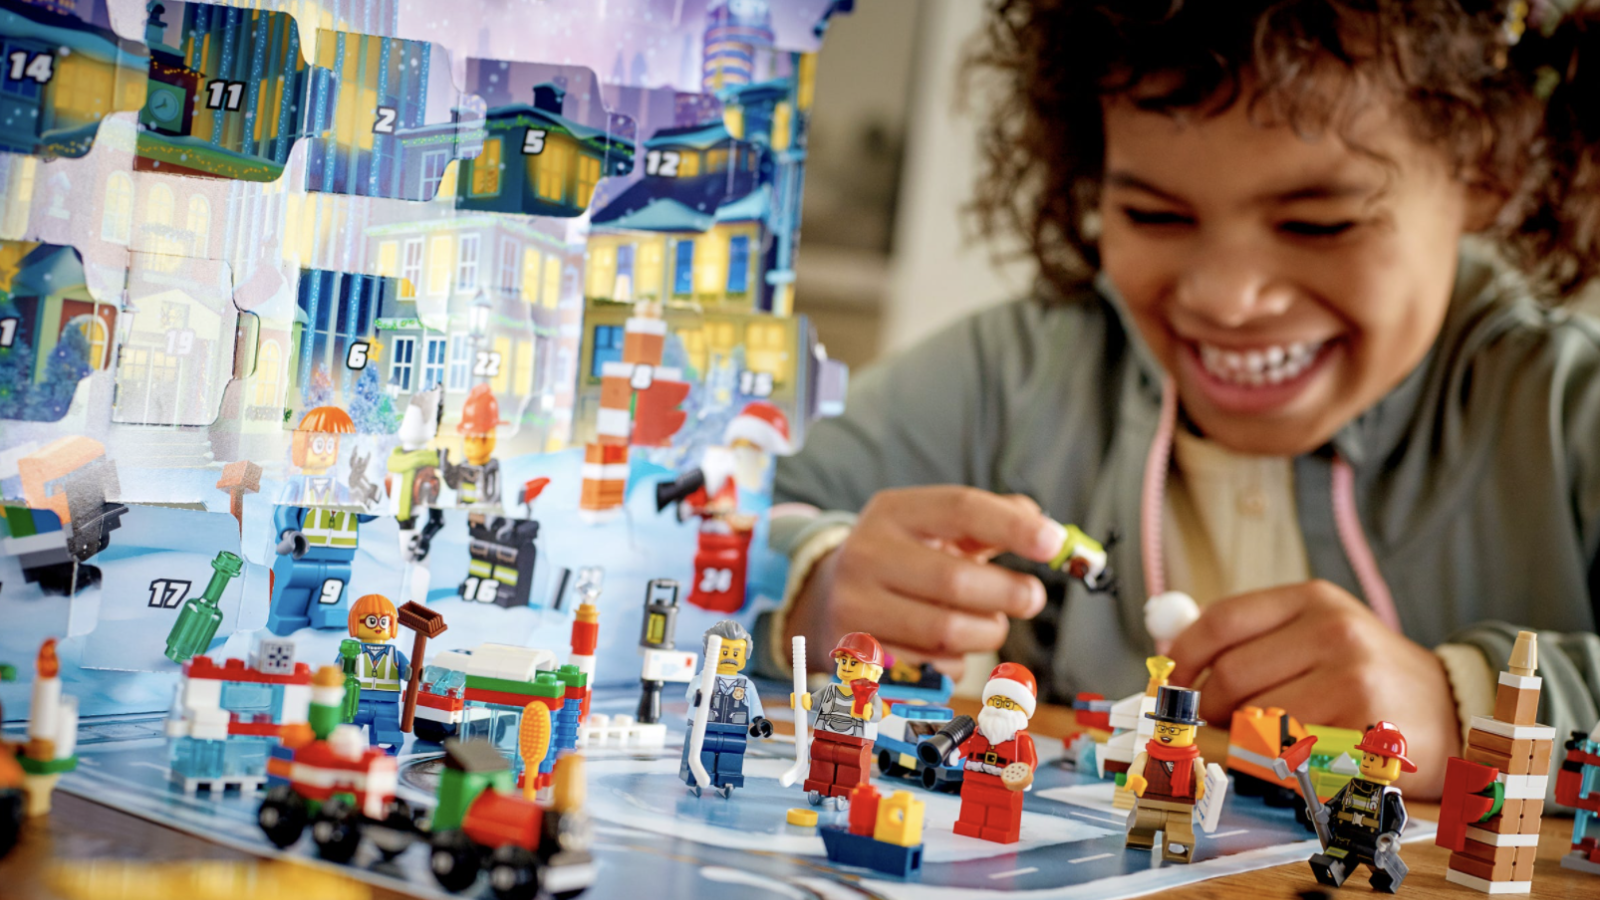 Lego announces plans to remove gender stereotypes from toys, following global survey